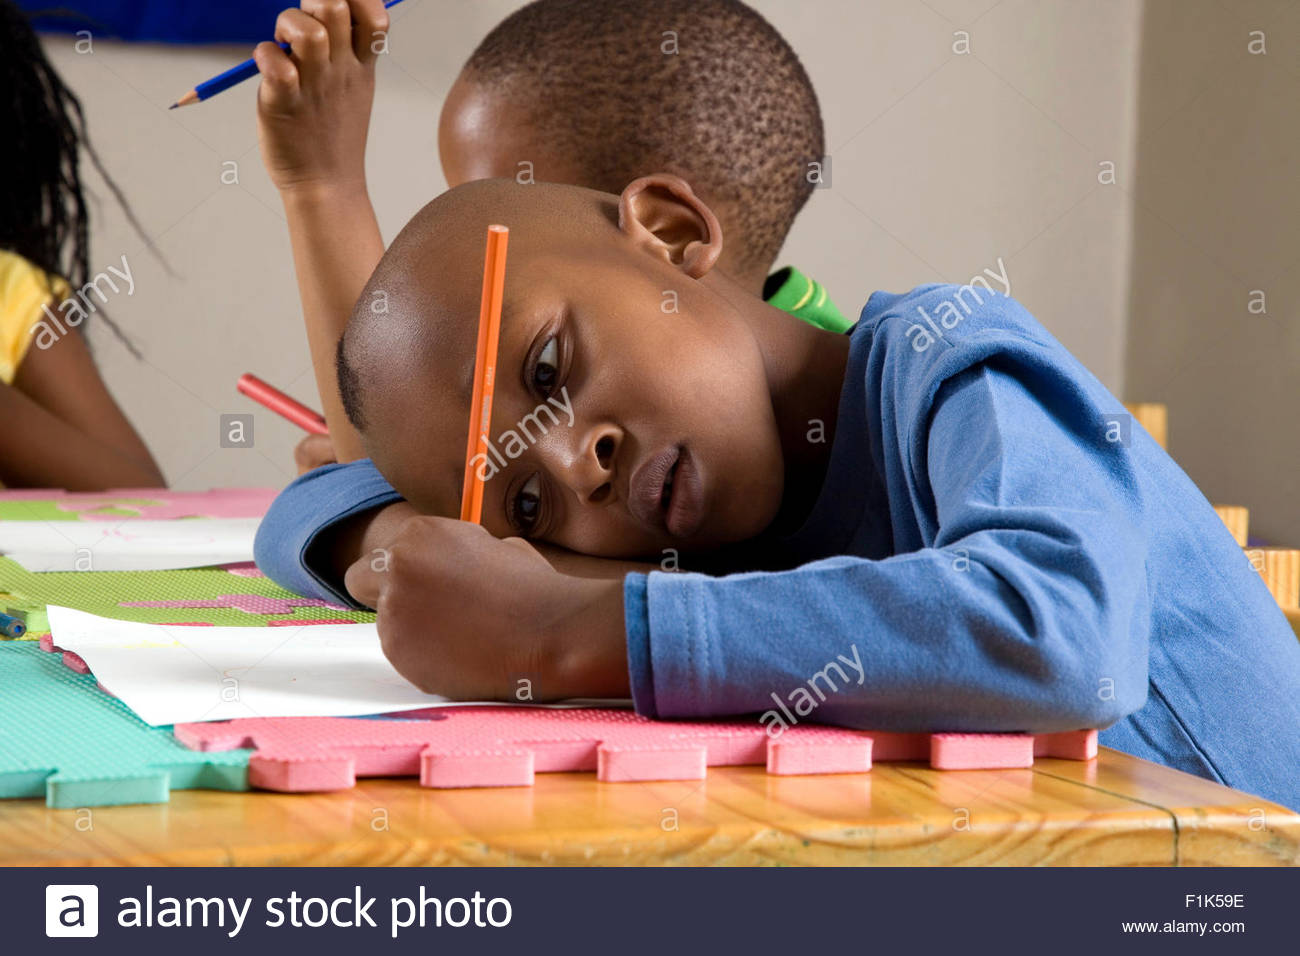 Boy Colouring In Stock Photos & Boy Colouring In Stock Images - Alamy